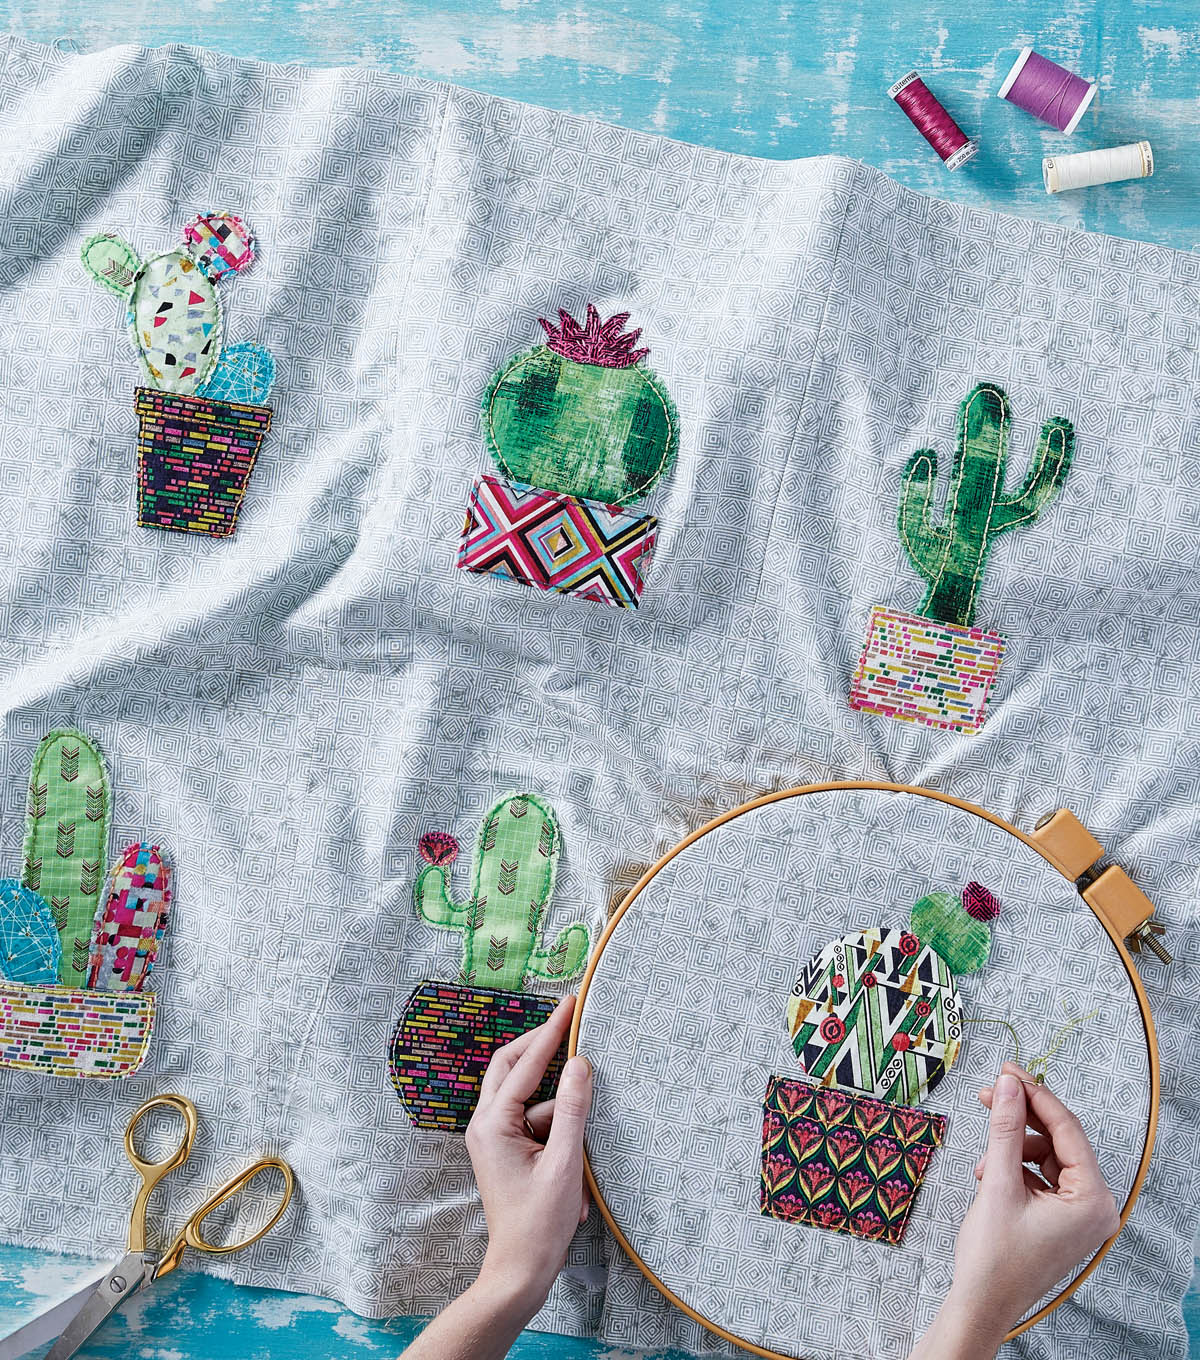 How To Make A Cactus Quilt Wall Hanging Joann